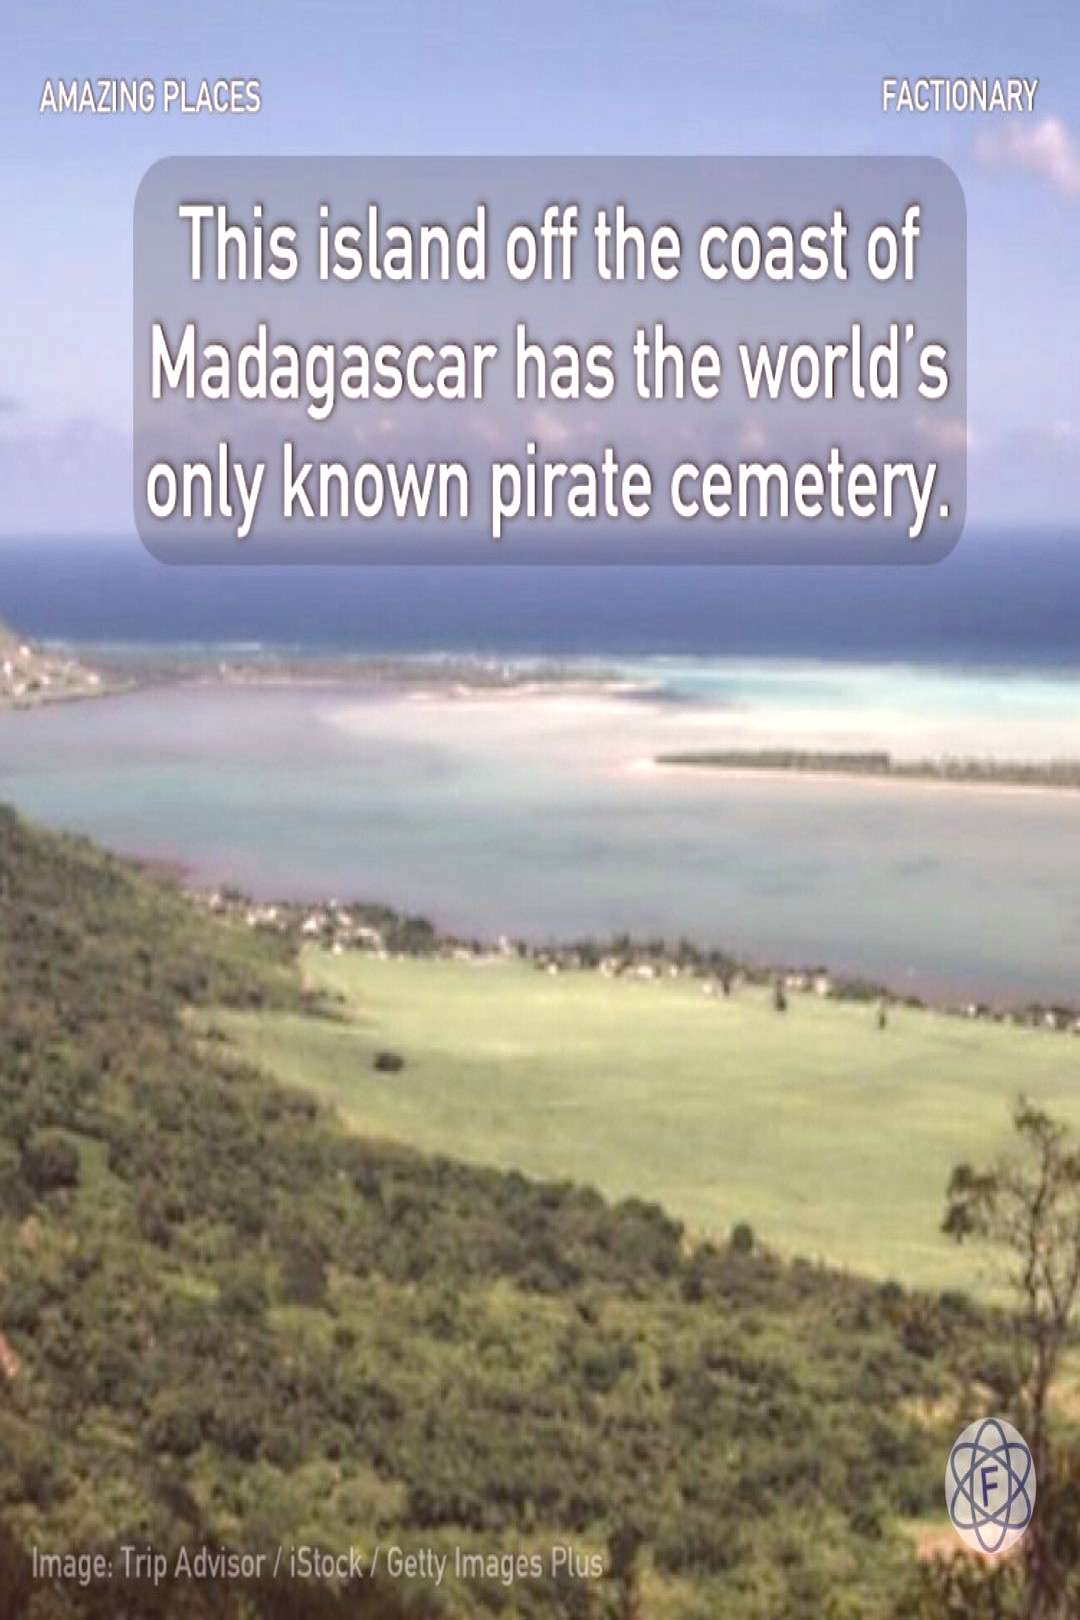 Amazing Places This island off the coast of Madagascar has the world's only known pirate cemetery